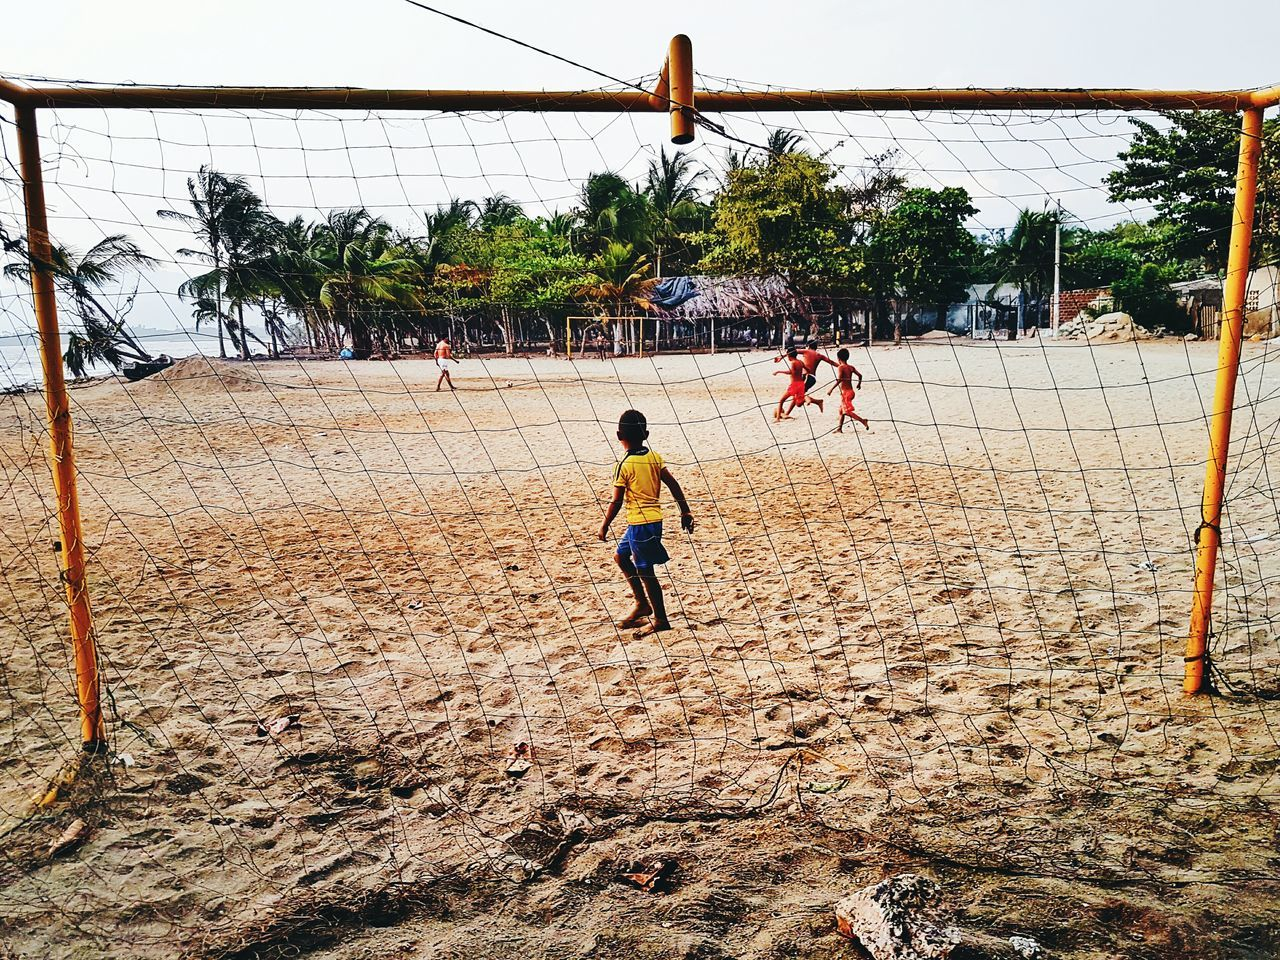 Football Fever Kids Playing Kidsphotography Kids Photography Kids Futbol Pasion Futbol Futboltime Futbol<3 Footballislife Football Player Football Game Football Life Football Fans Football Stadium Football Match Football Time  Playa #beach Beach Photography Beach Life Beach Time Reportagephotography